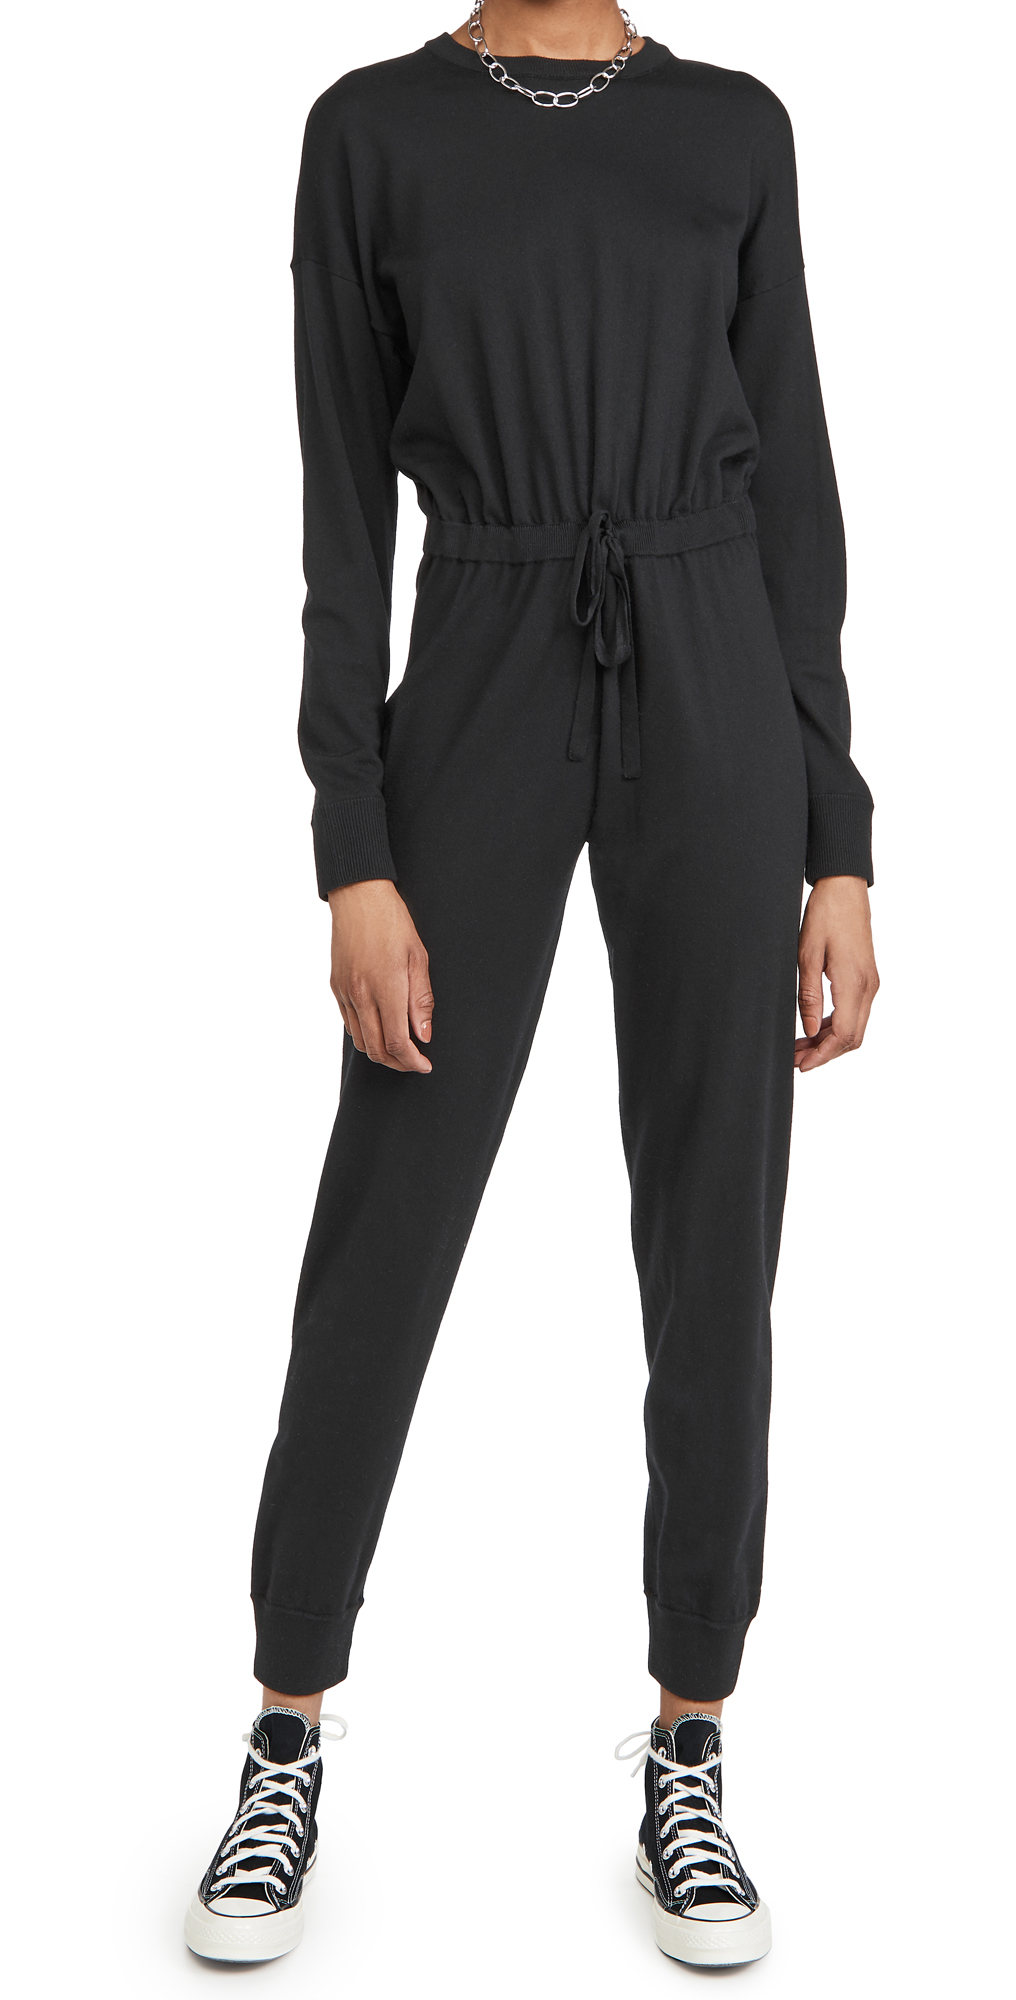 alice + olivia Nikita Knit Jumpsuit with Drawstring Waist